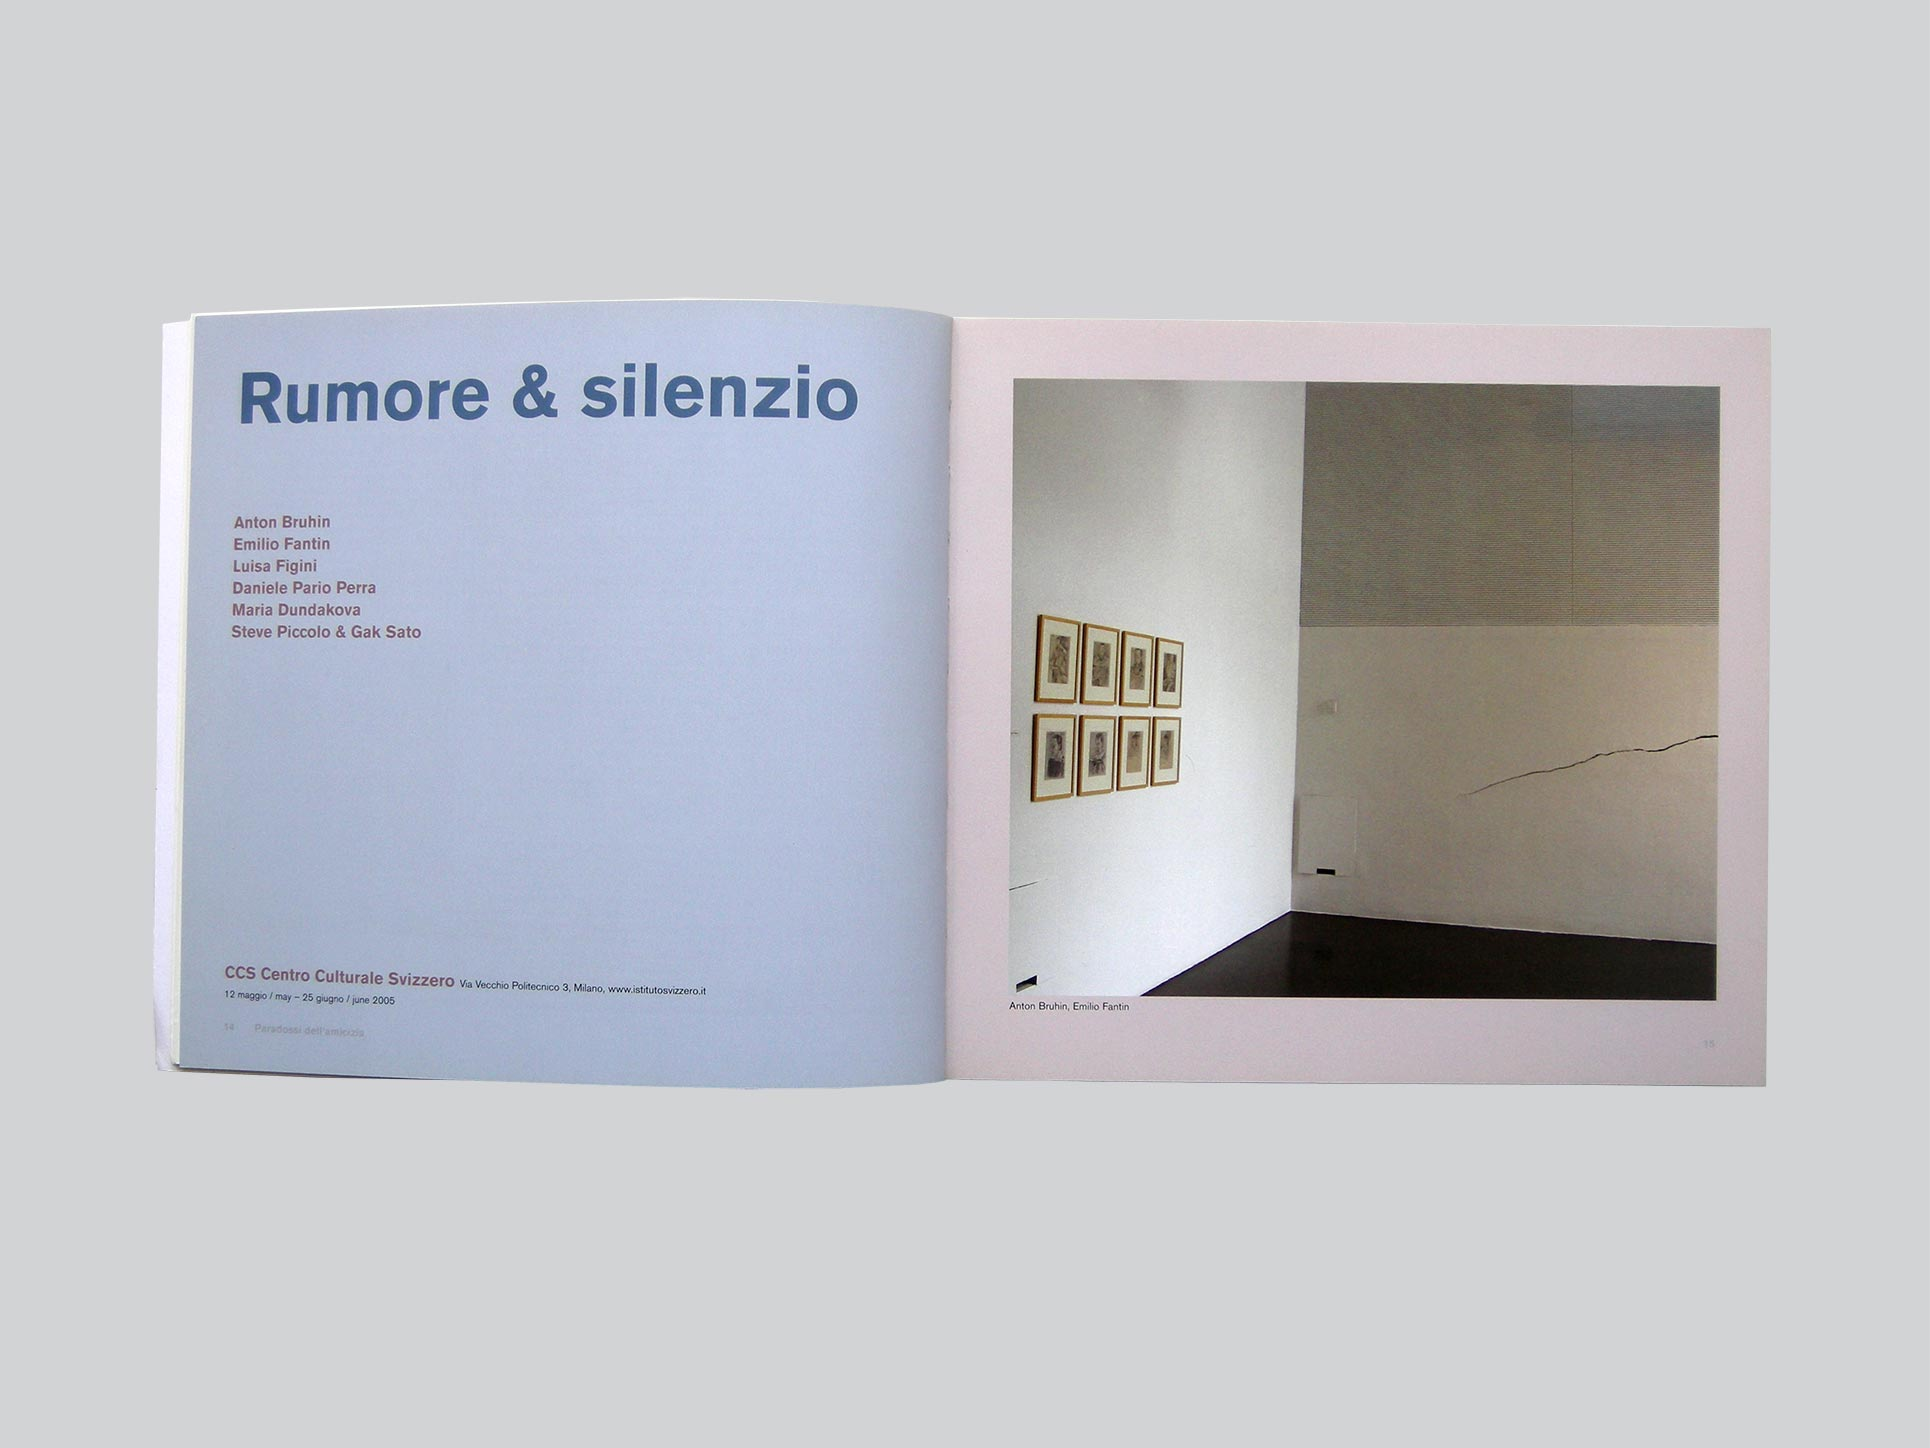 Exhibition's catalogue